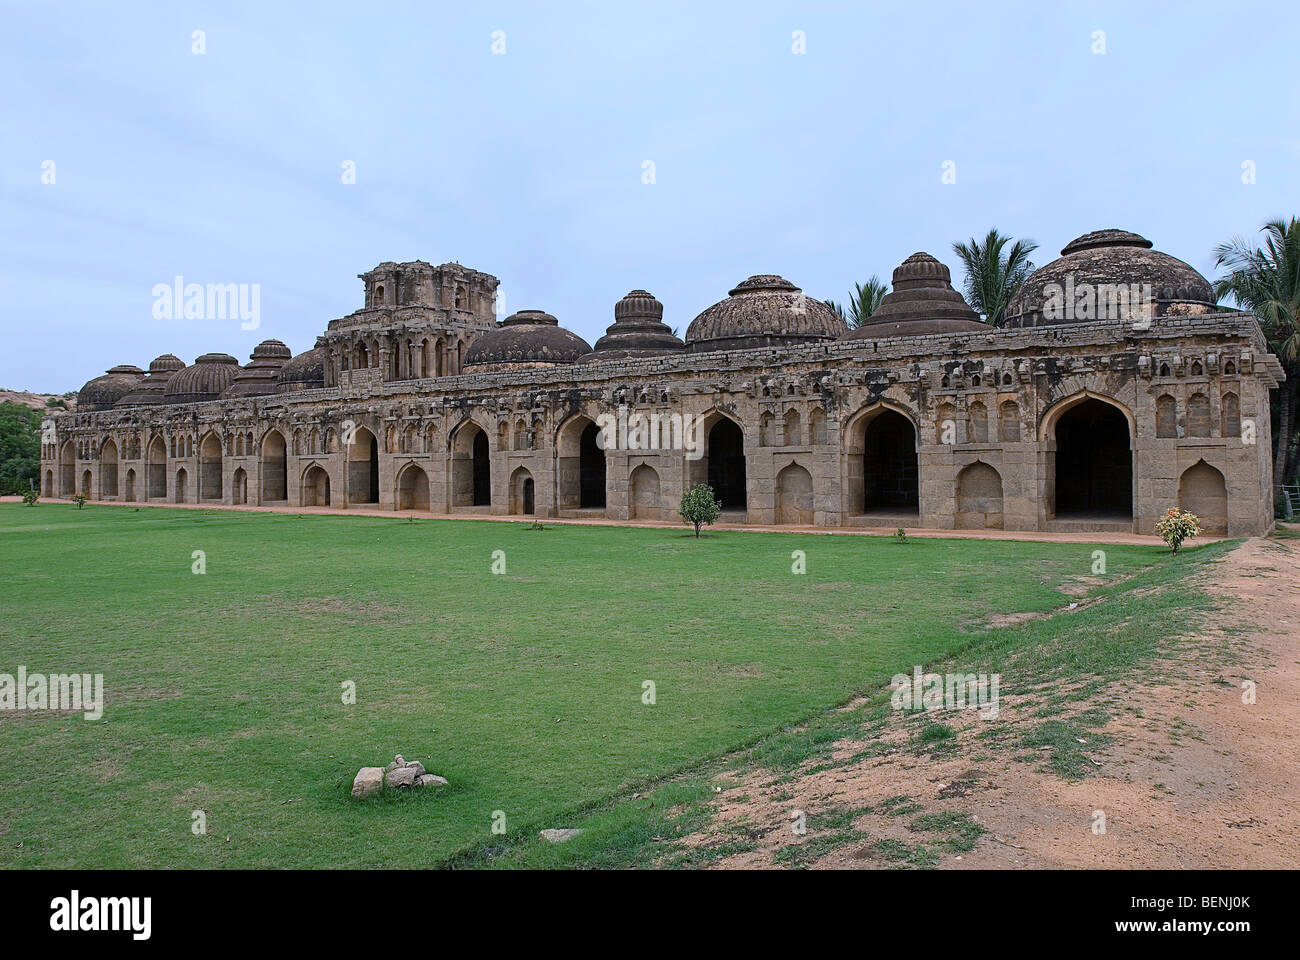 Elephant Stables a facade of arched openings and recesses in Bahmani style Hampi Karnataka India - Stock Image